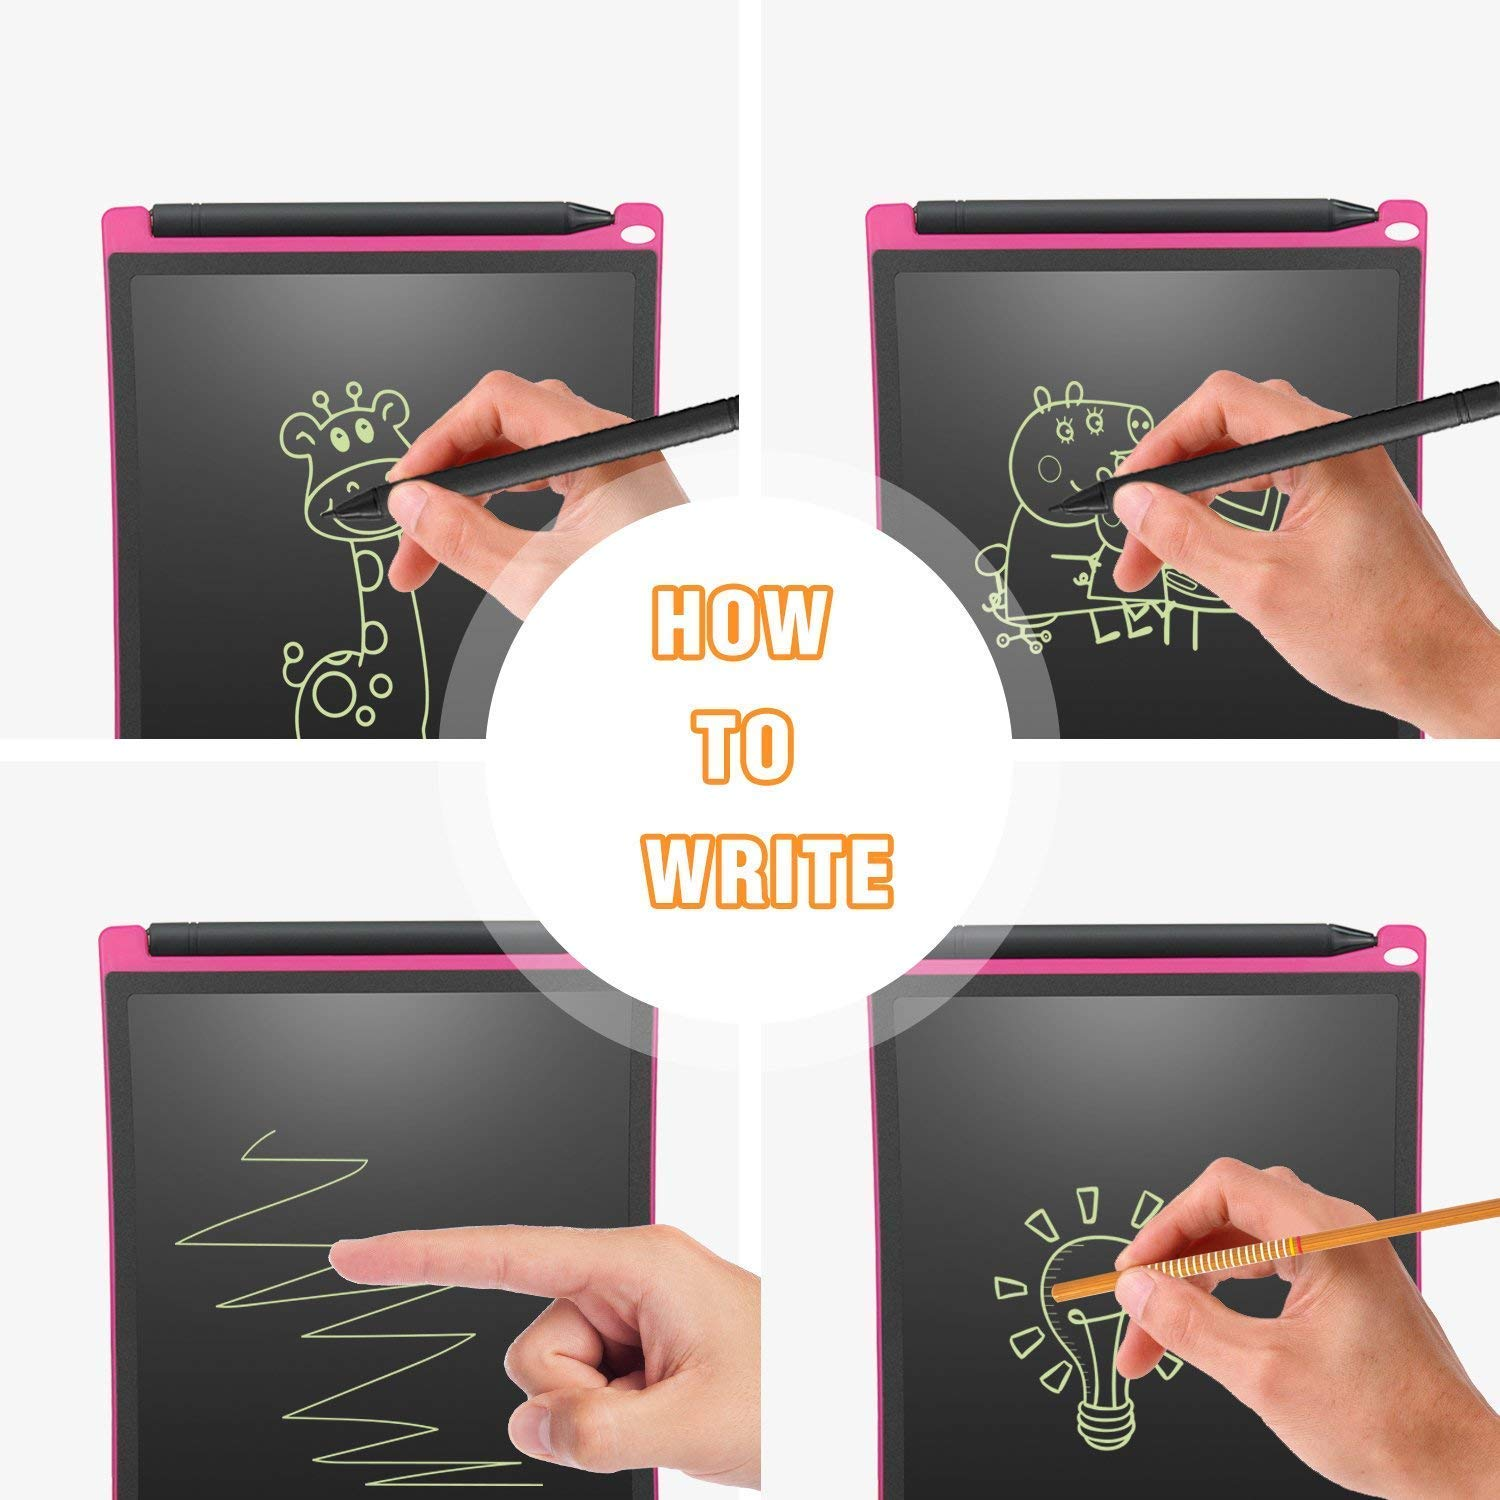 for Note NEWYES 12 Inch LCD Writing Drawing Tablet Green Memo To Do List Suits for All Age Uses for Kids to Doodle